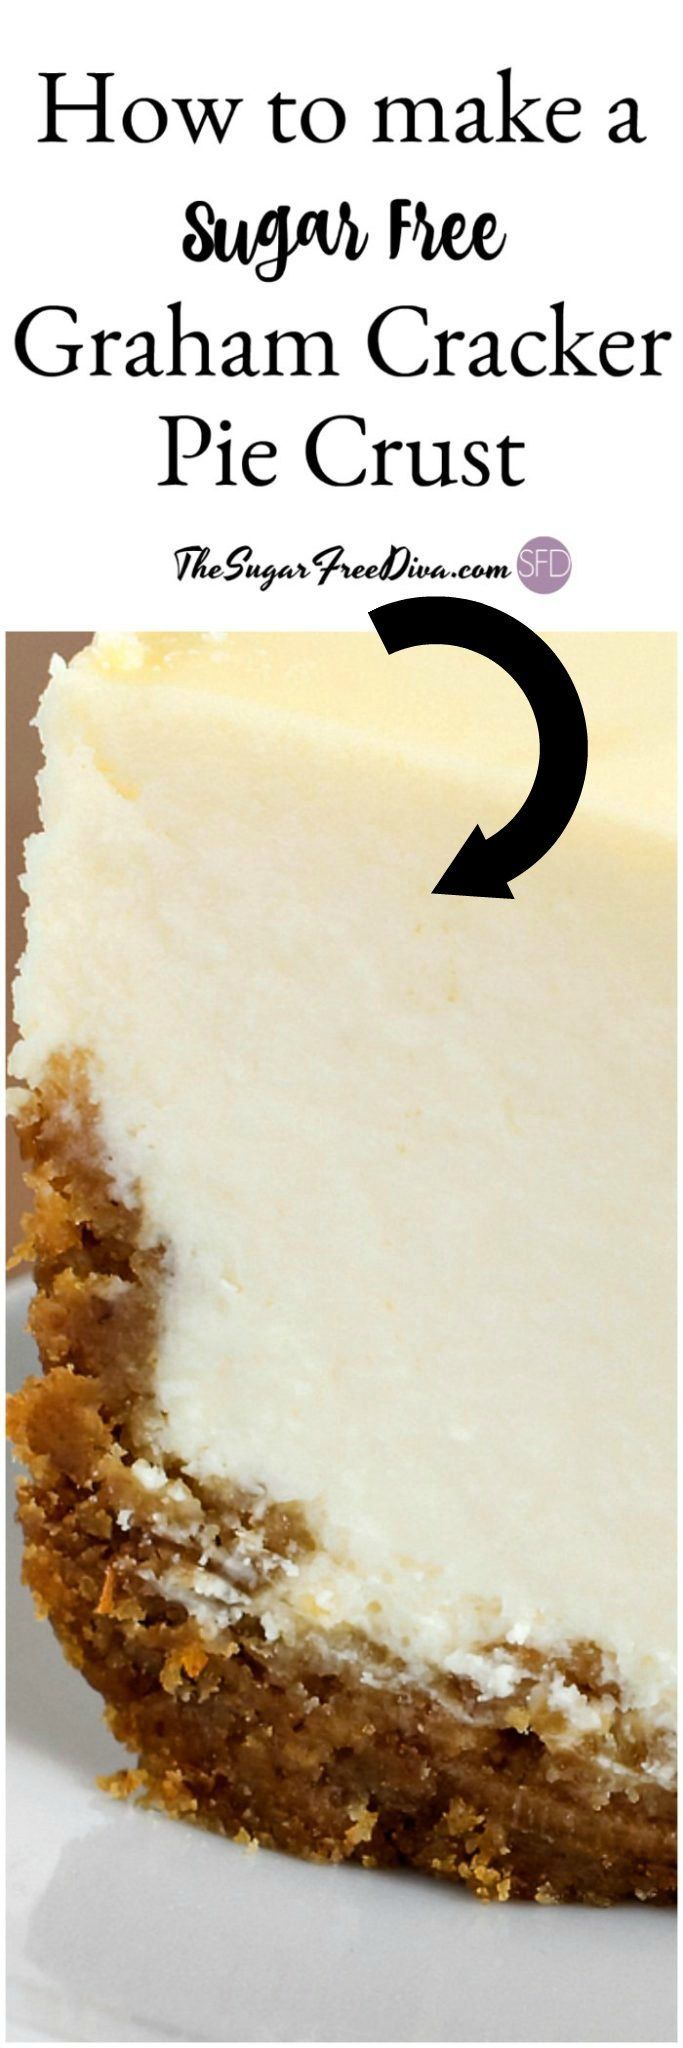 How to make a low carb and sugar free crust #sugar…